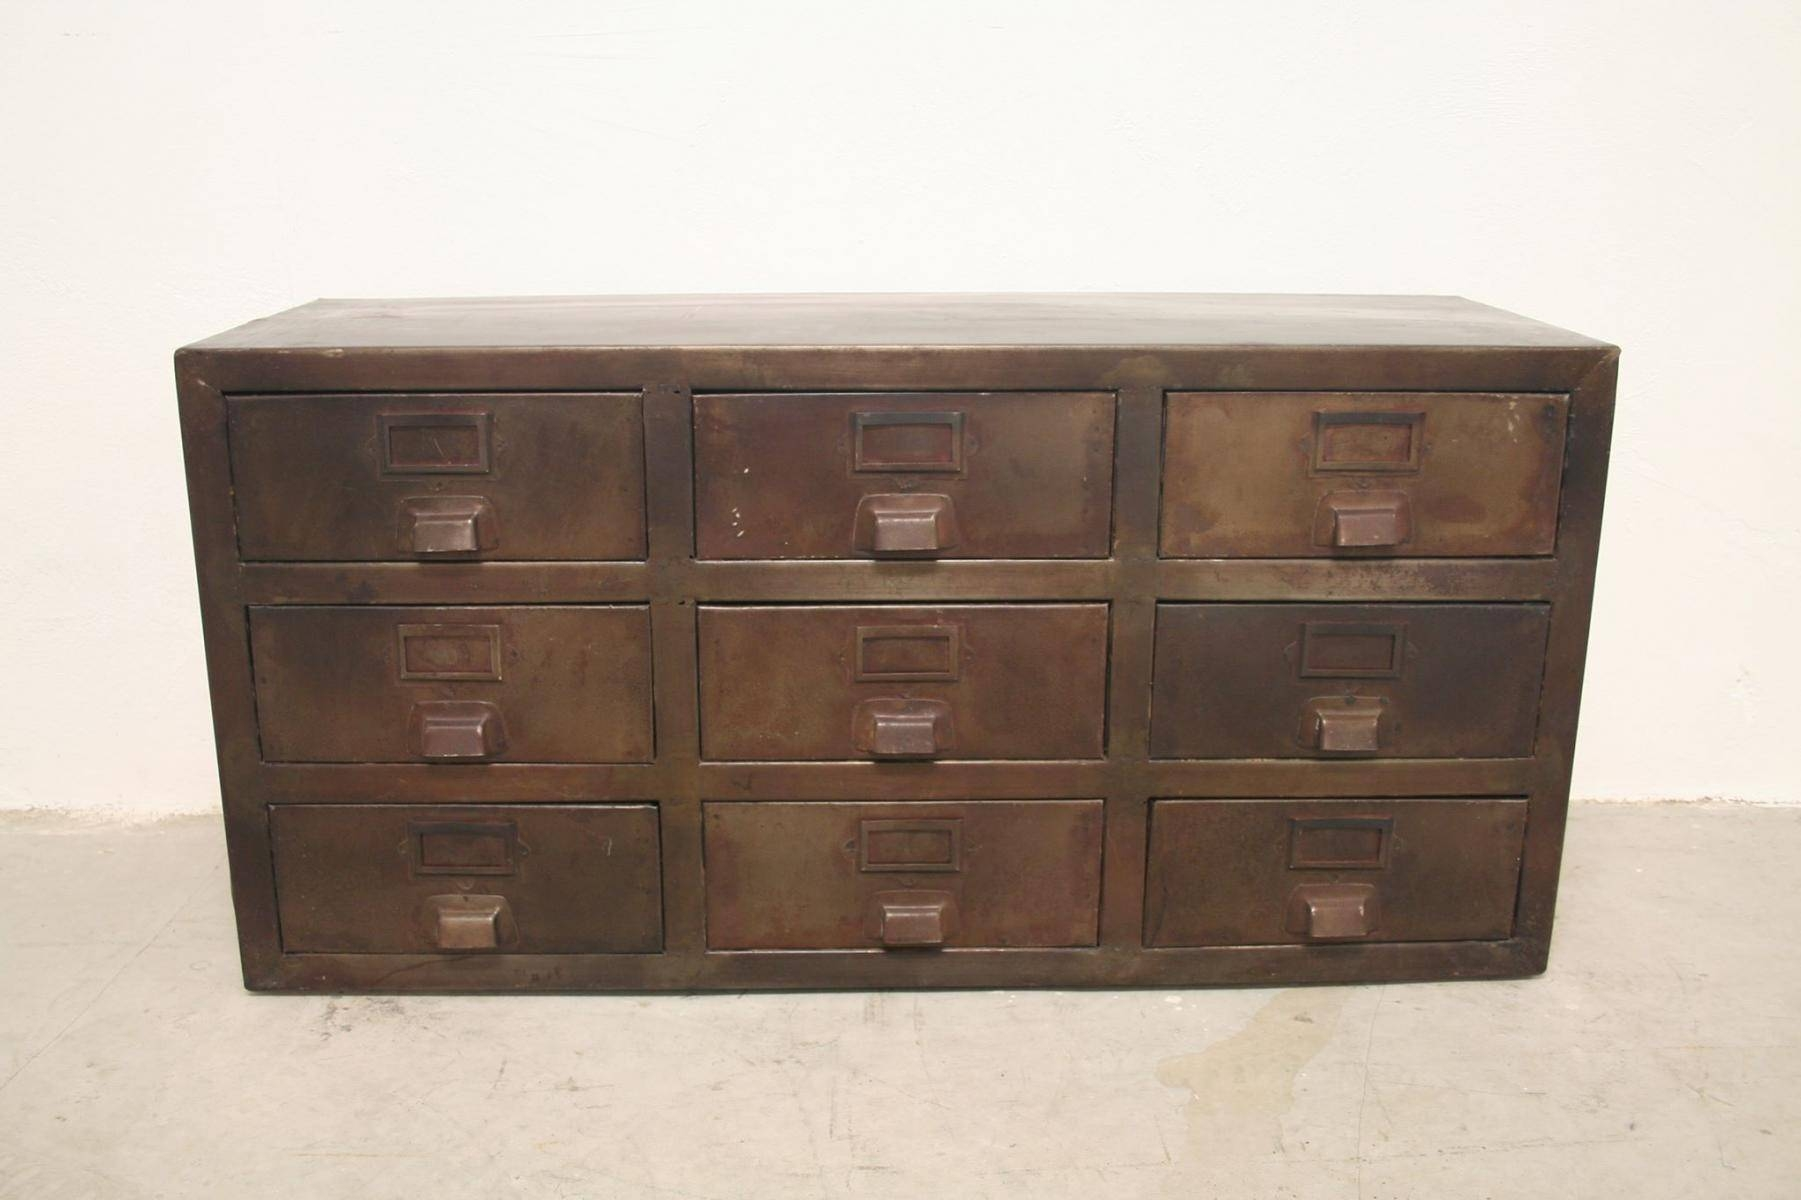 Buy Vintage Industrial Sideboards At Pamono intended for Metal Sideboard Furniture (Image 4 of 30)